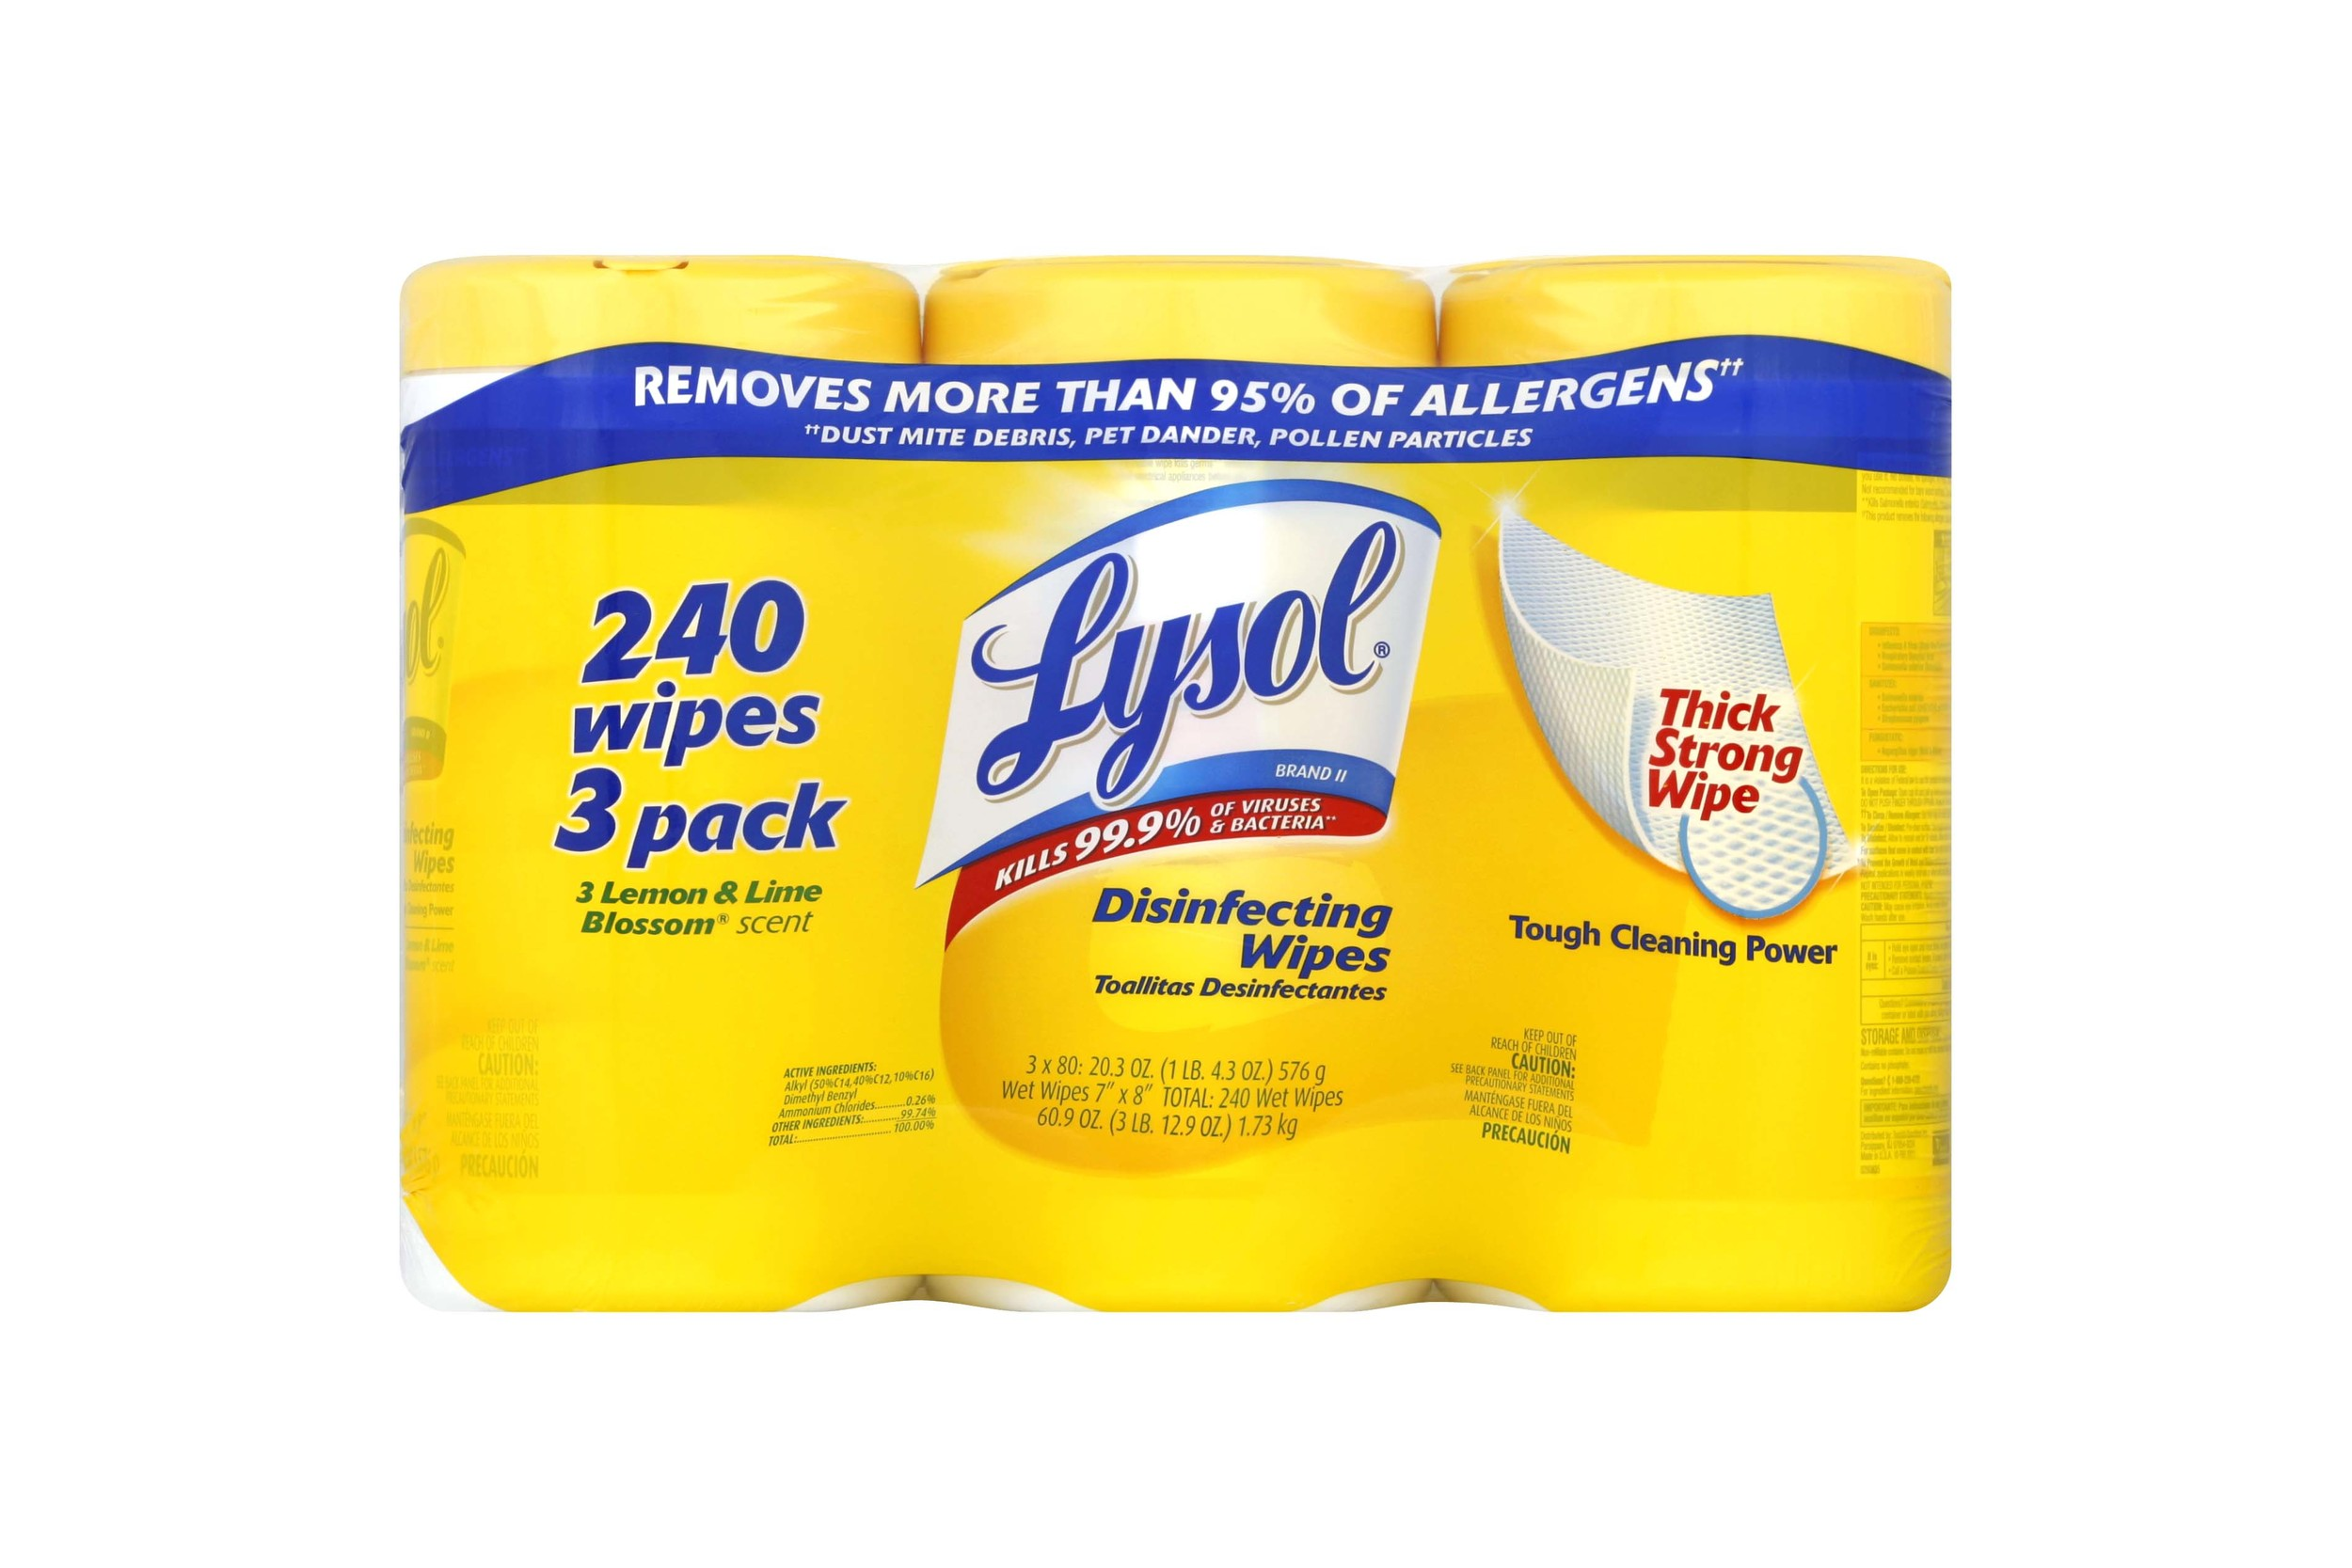 Disinfecting Wipes (3 pack) - 4.5 stars - $13 (Prime)